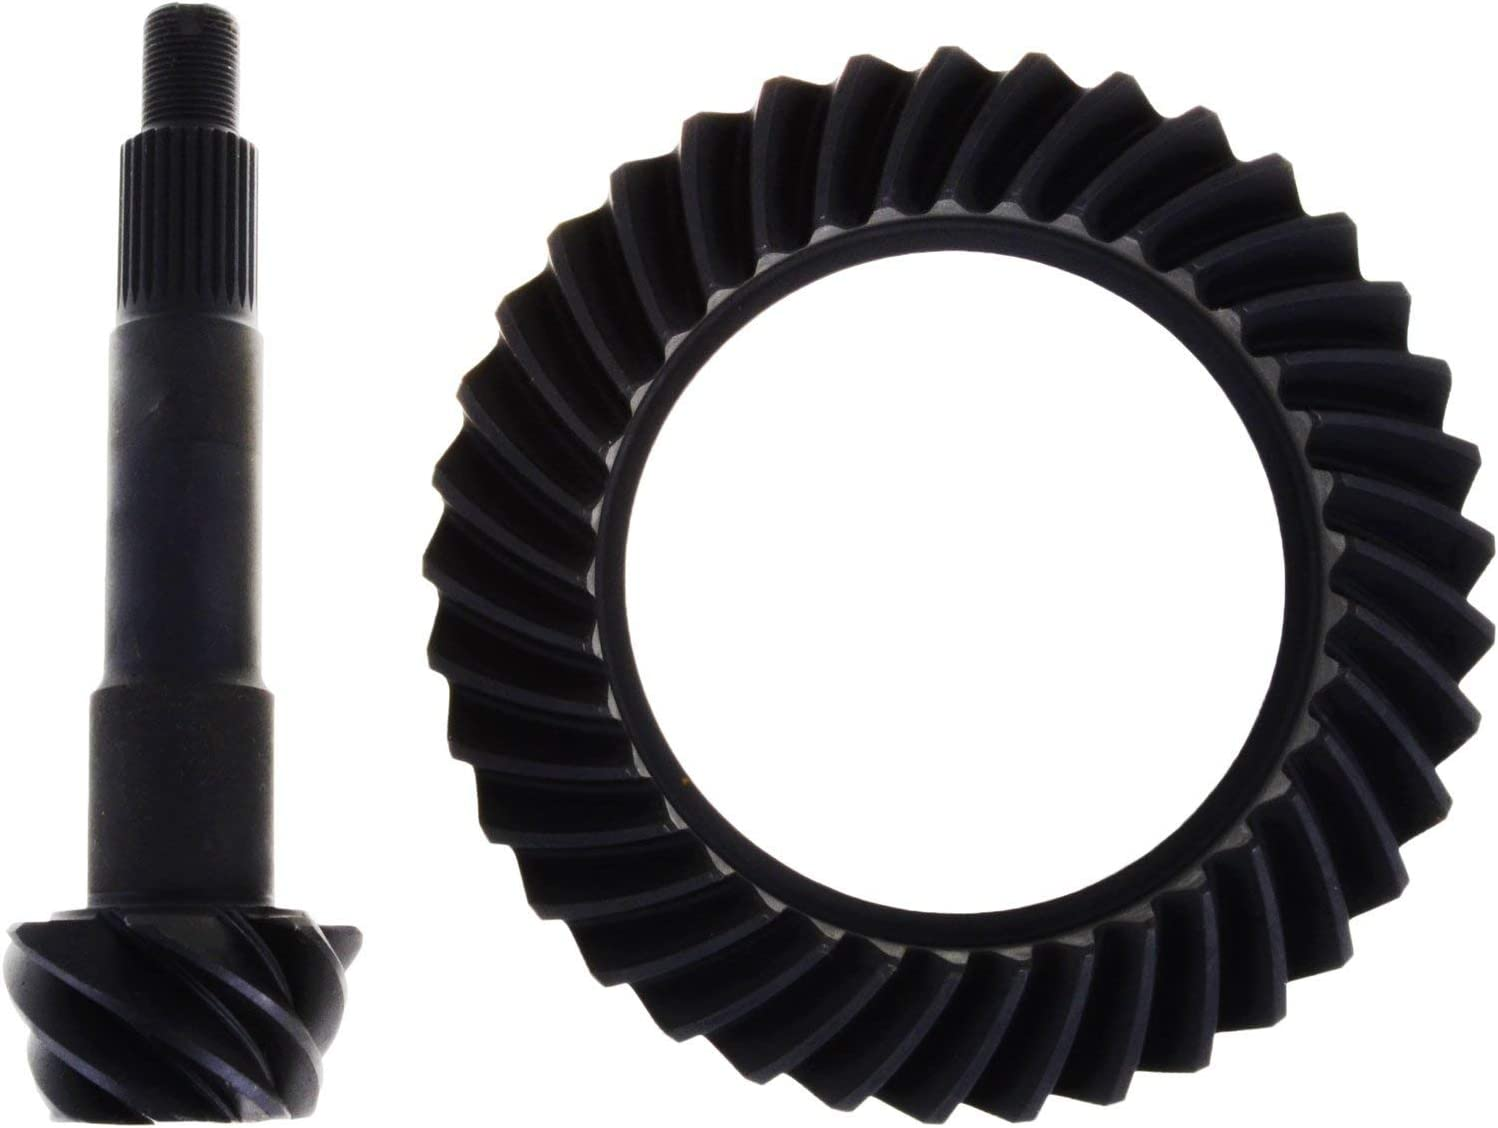 SVL 2020891 Ring and Pinion Gear Set for Toyota 8 Axle [並行輸入品]